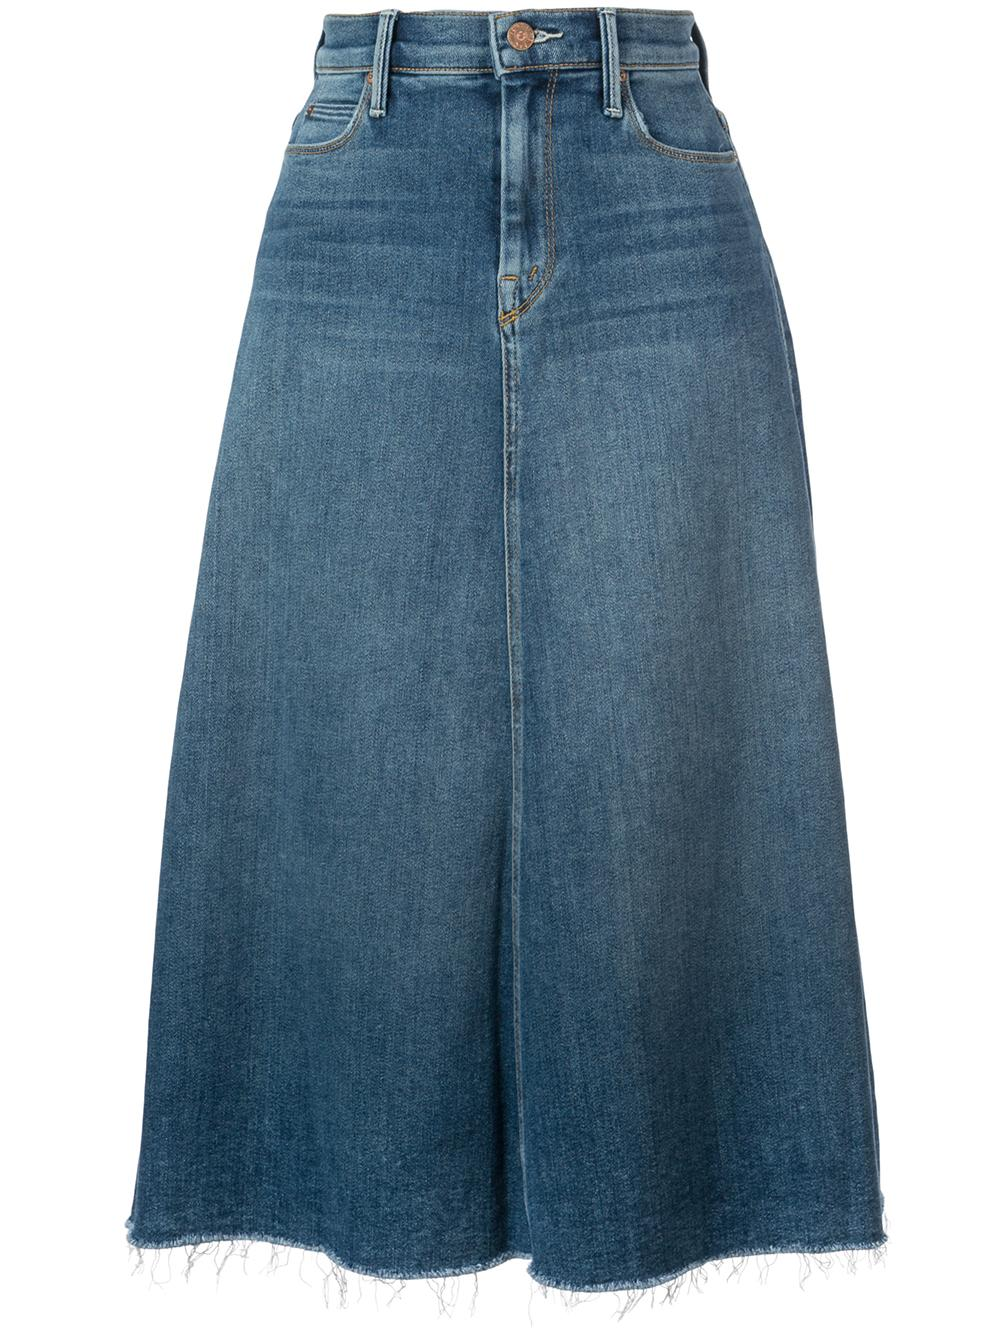 The Circle A-Line Denim Fray Midi Skirt